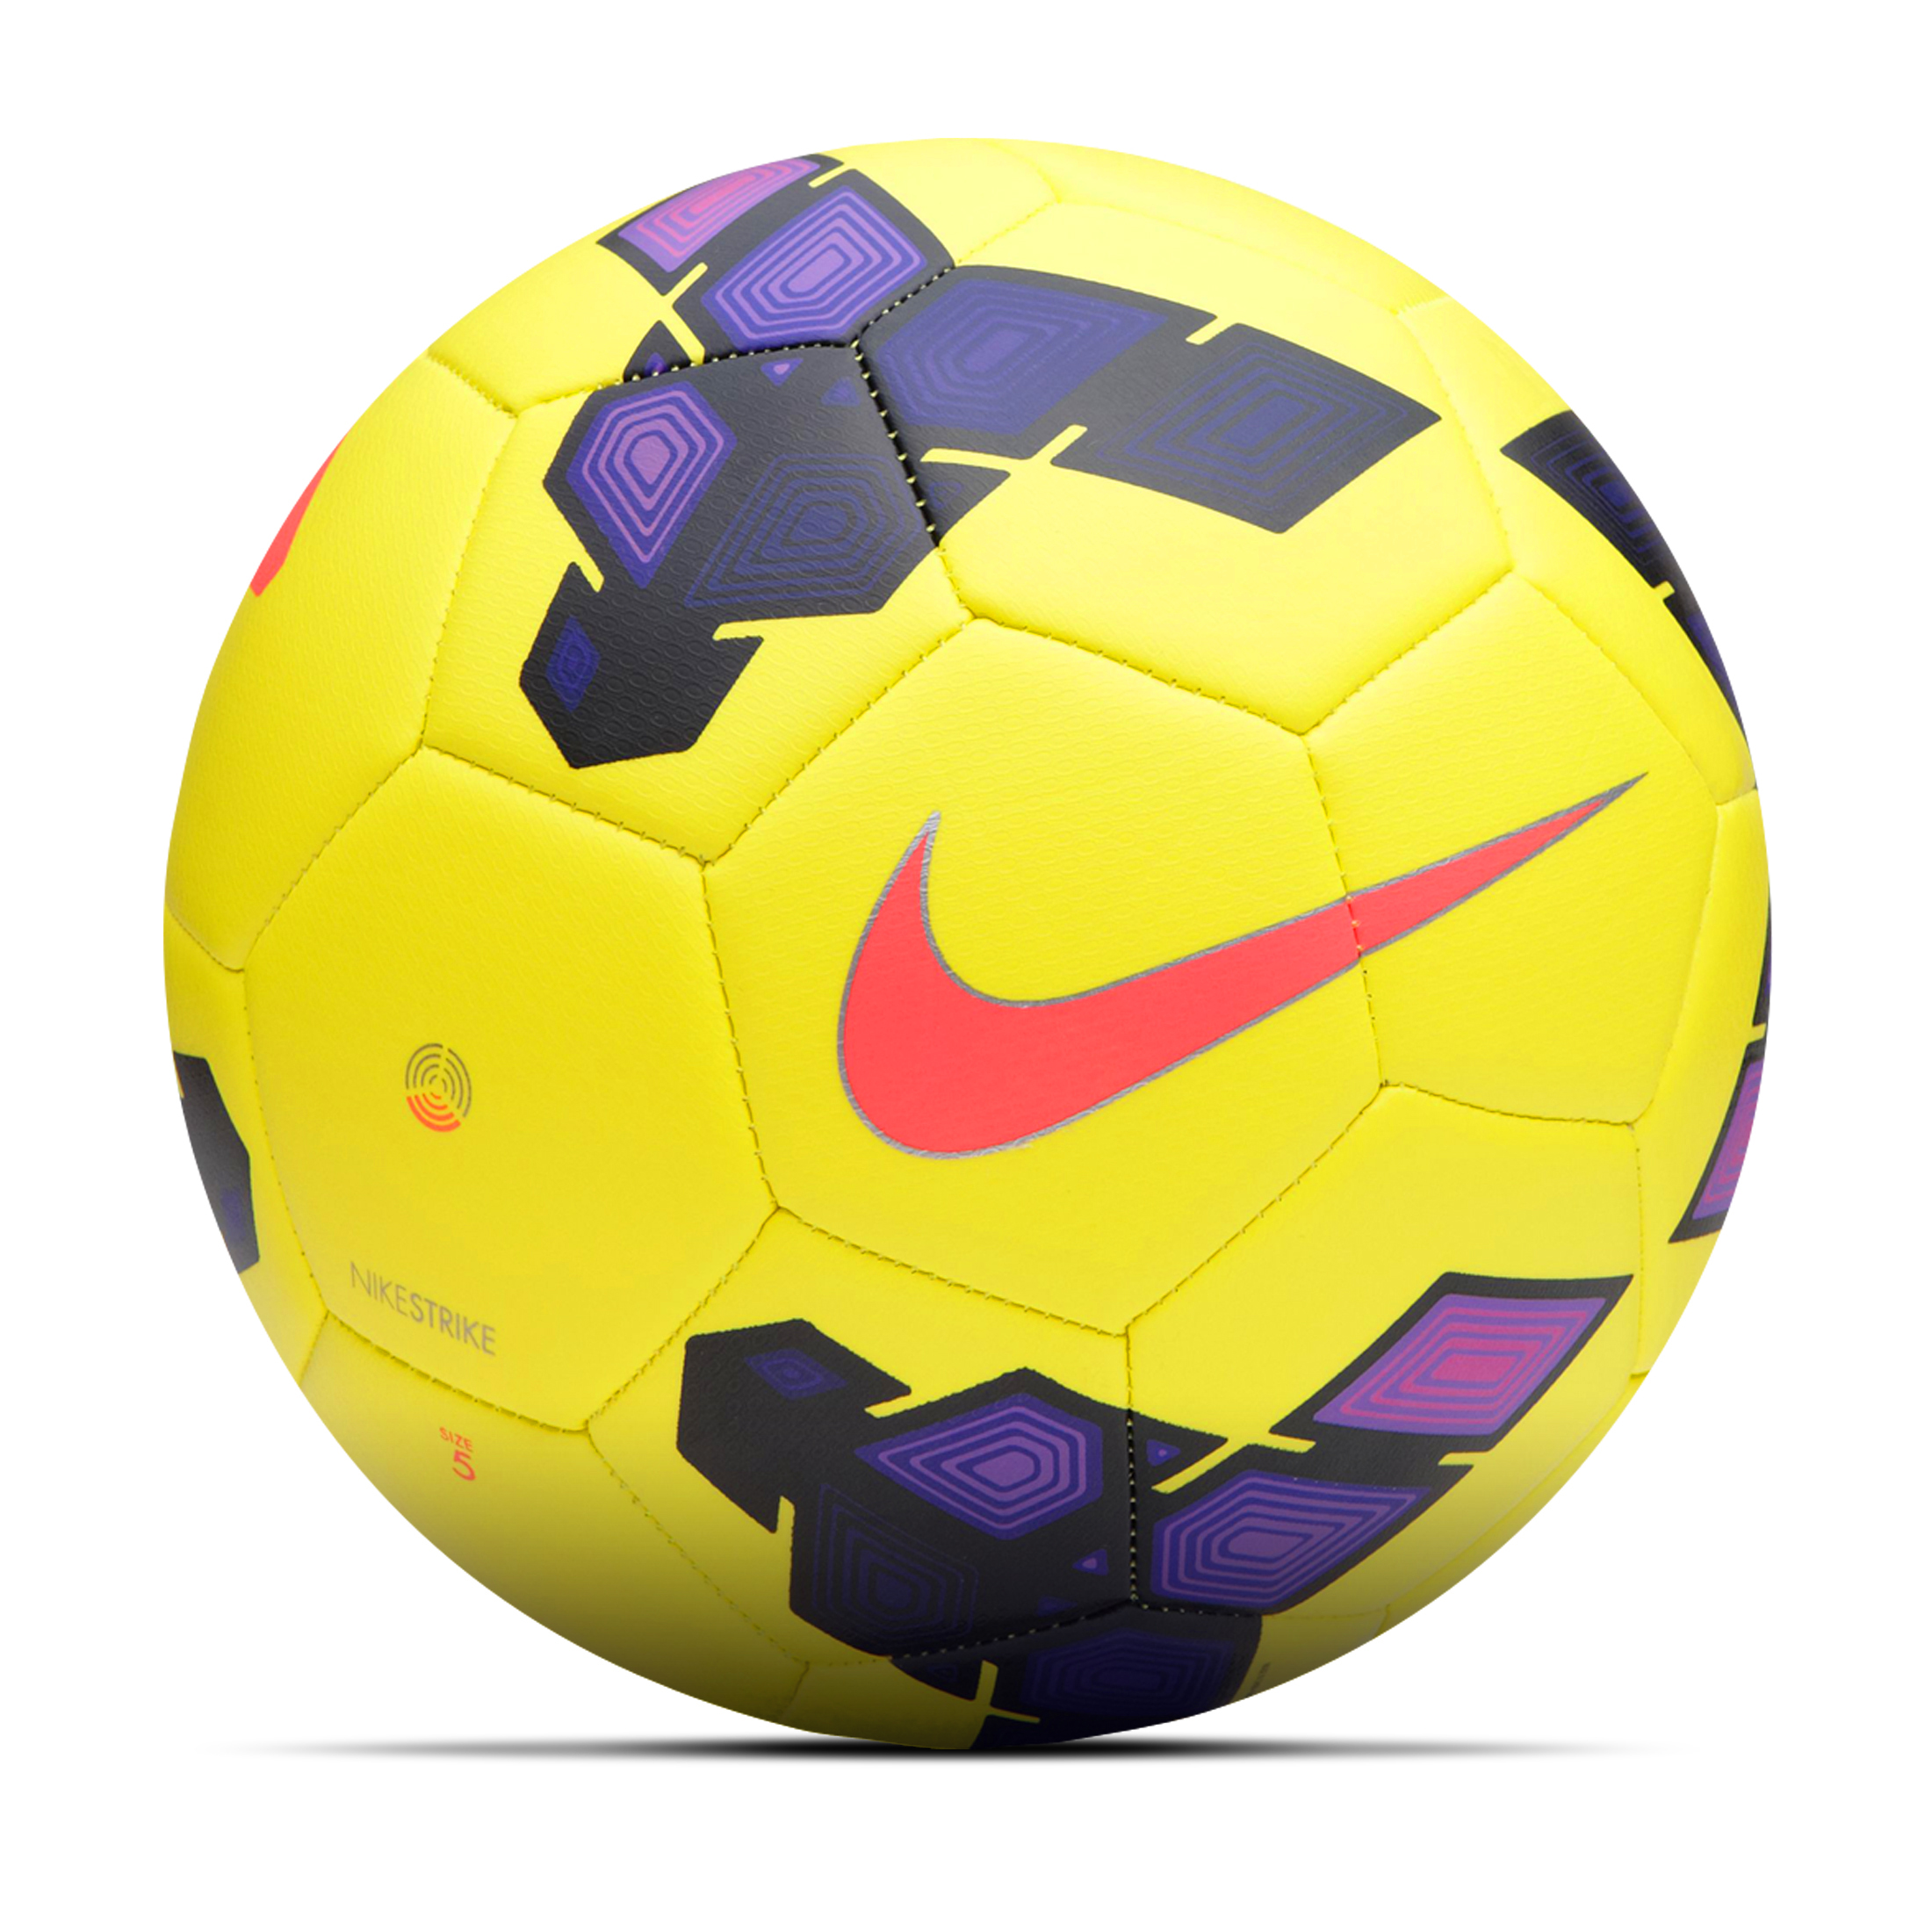 Nike Strike Premier League Hi-Vis Football